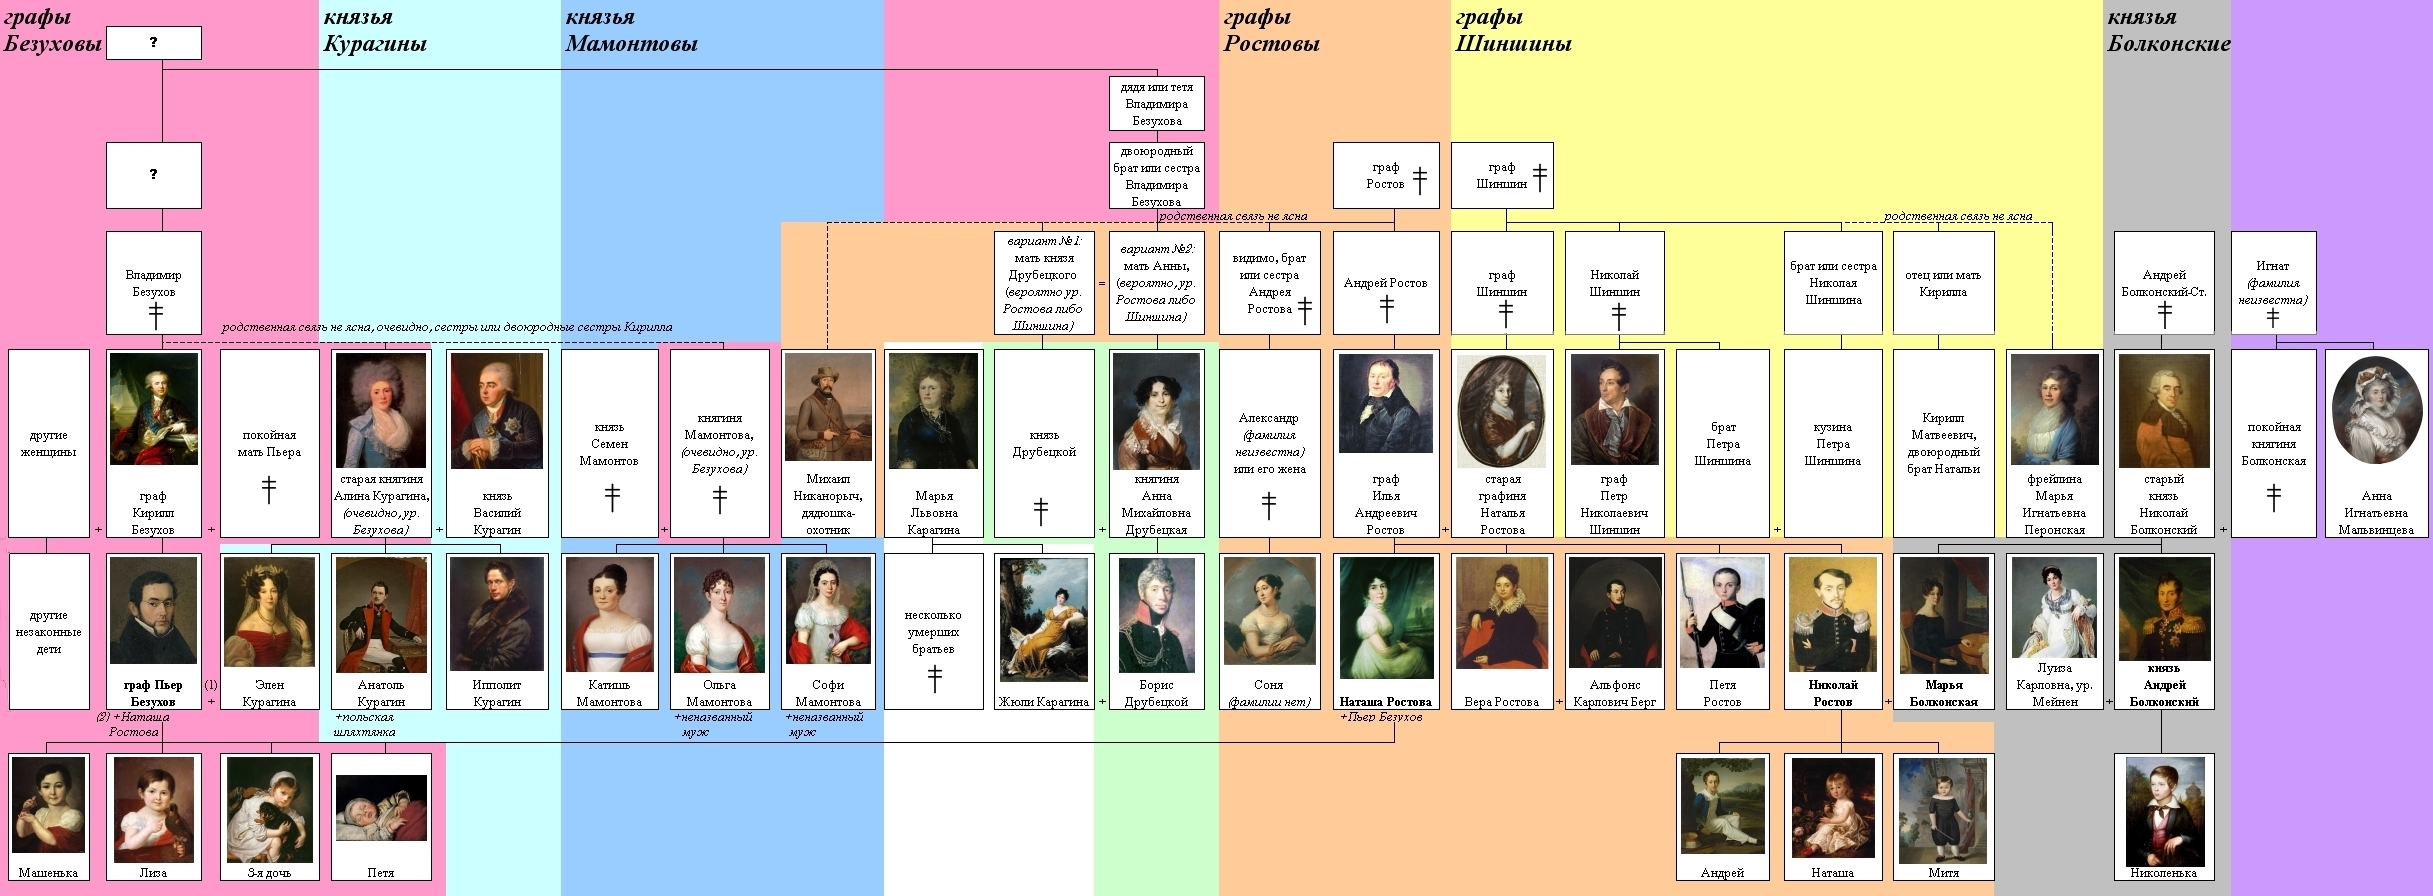 https://upload.wikimedia.org/wikipedia/commons/d/d1/Leo_Tolstoy%27s_War_and_peace_family_tree_ILL_%28RU%29_by_shakko.jpg